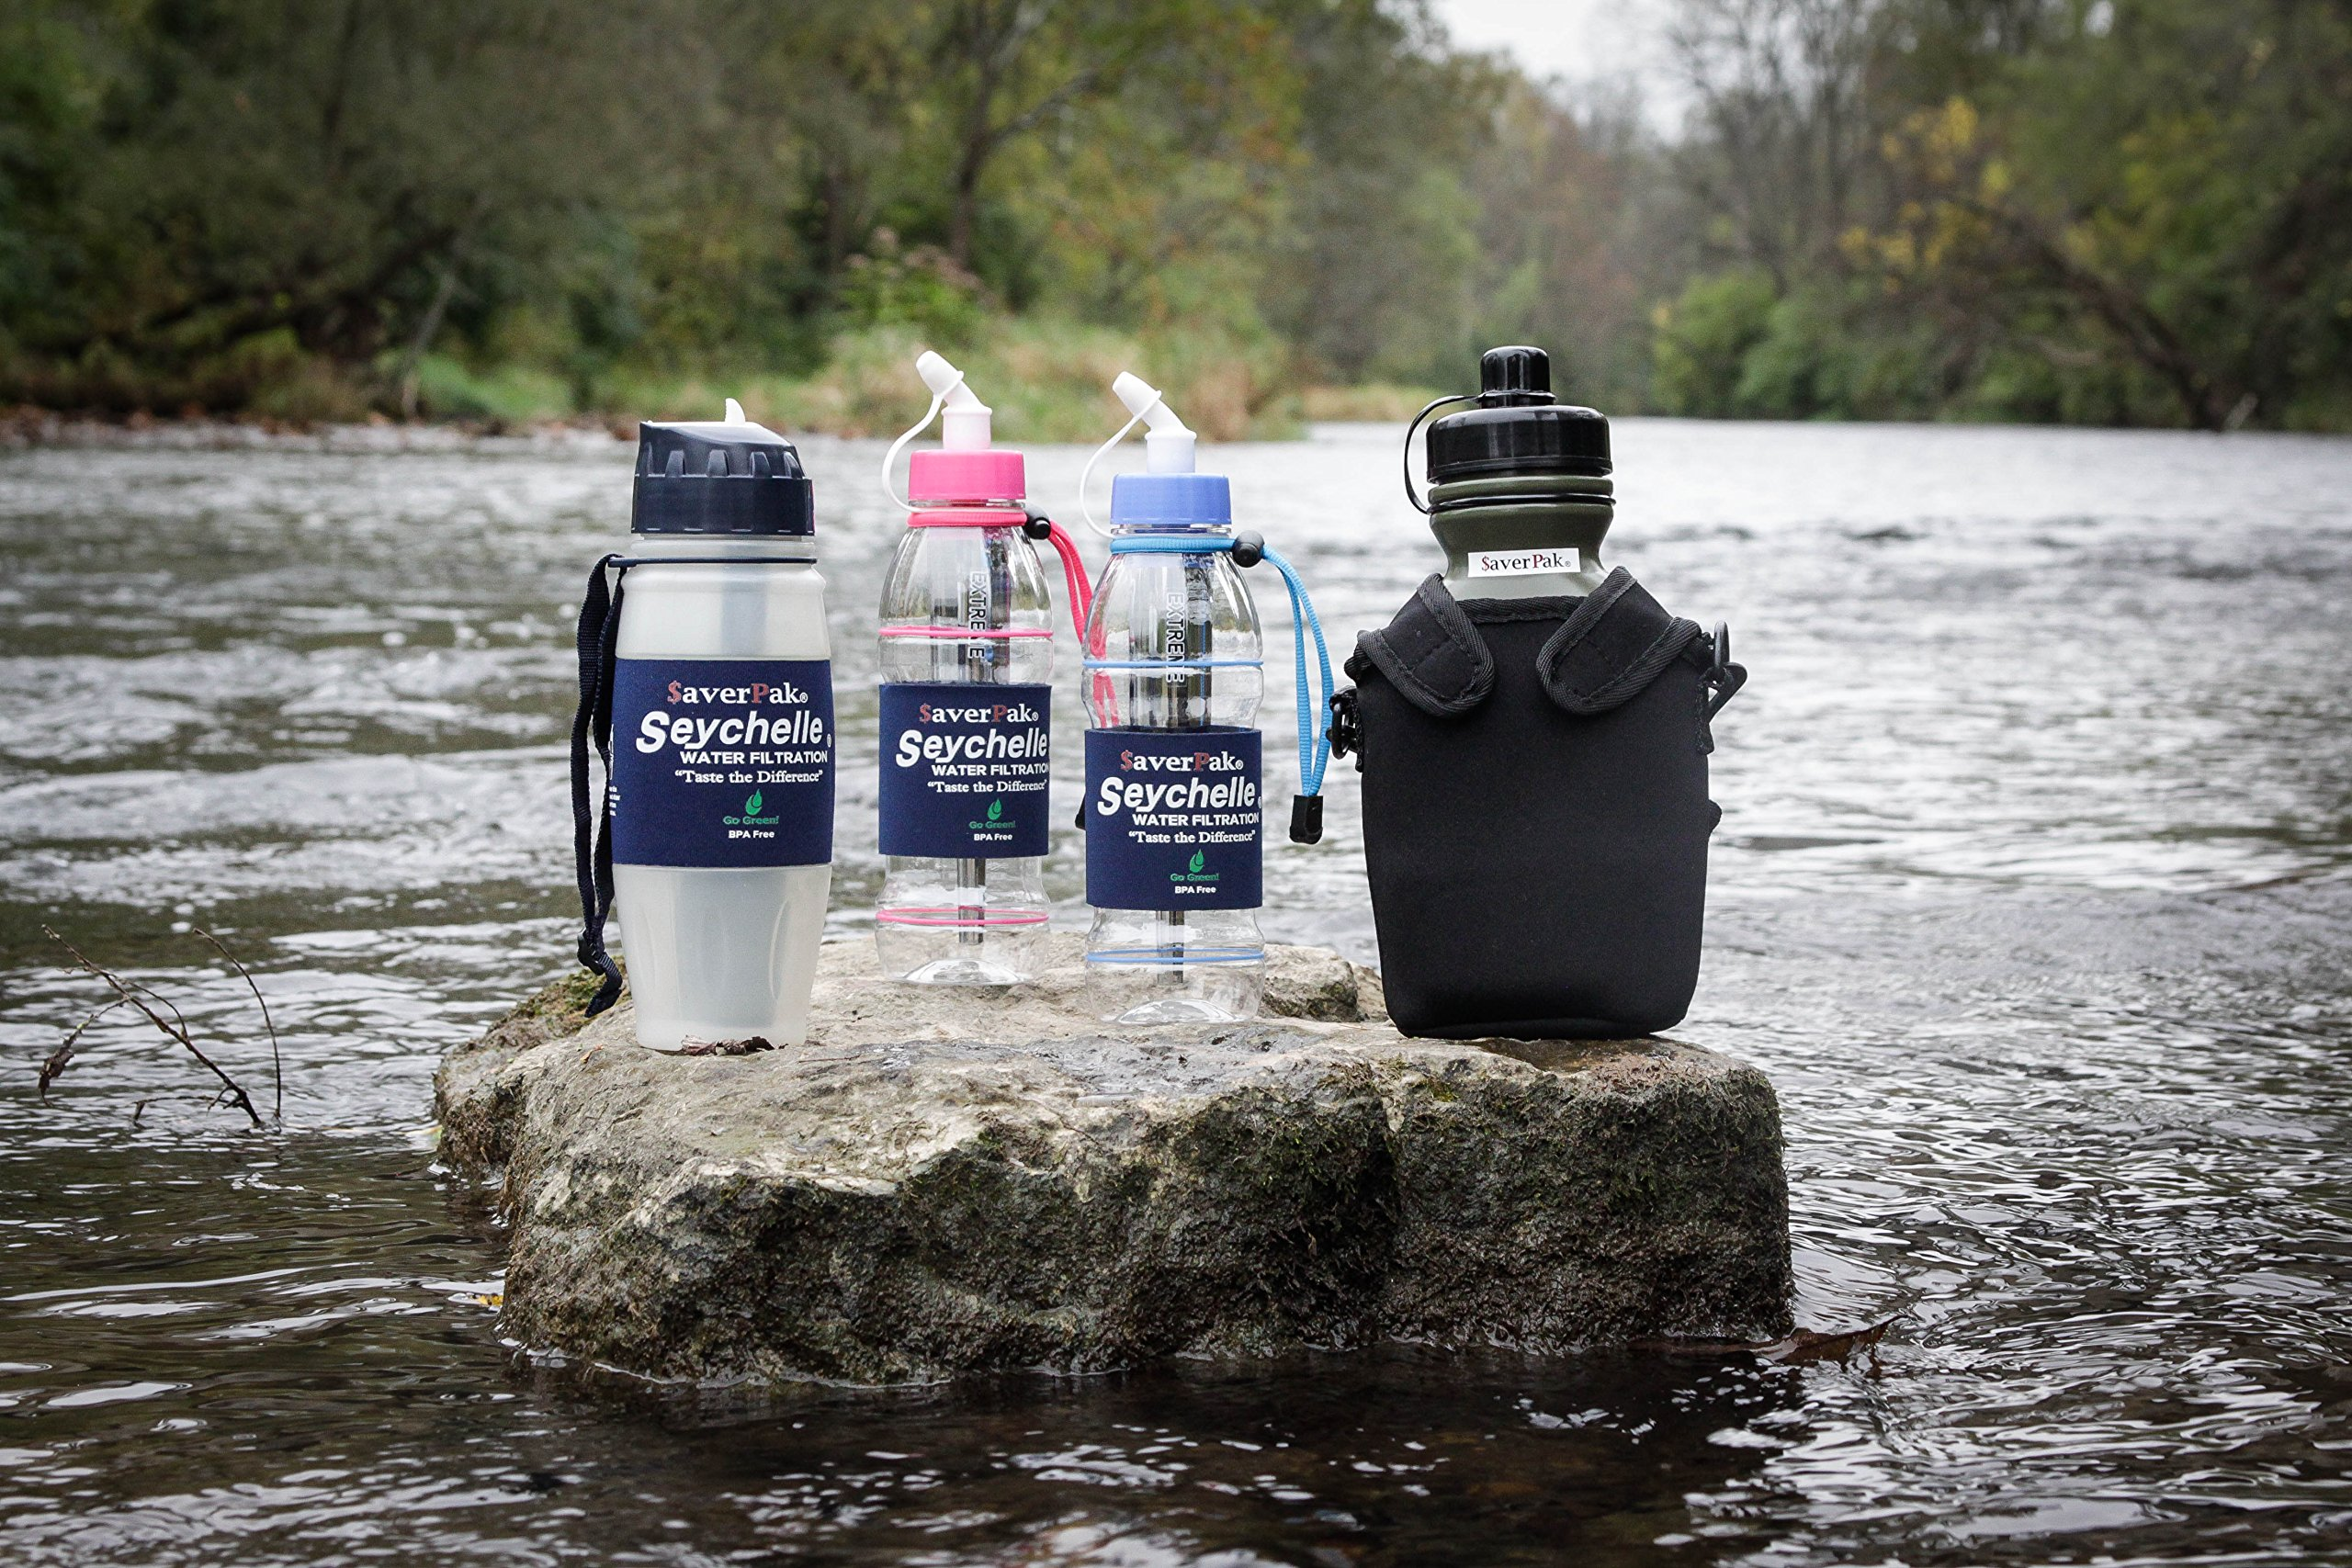 $averPak 2 Pack - Includes 2 Seychelle 28oz Flip Top Water Filtration Bottles with the Seychell EXTREME RAD/ADV Filters and 2 Additional Spare EXTREME RAD/ADV Filters by $averPak (Image #4)